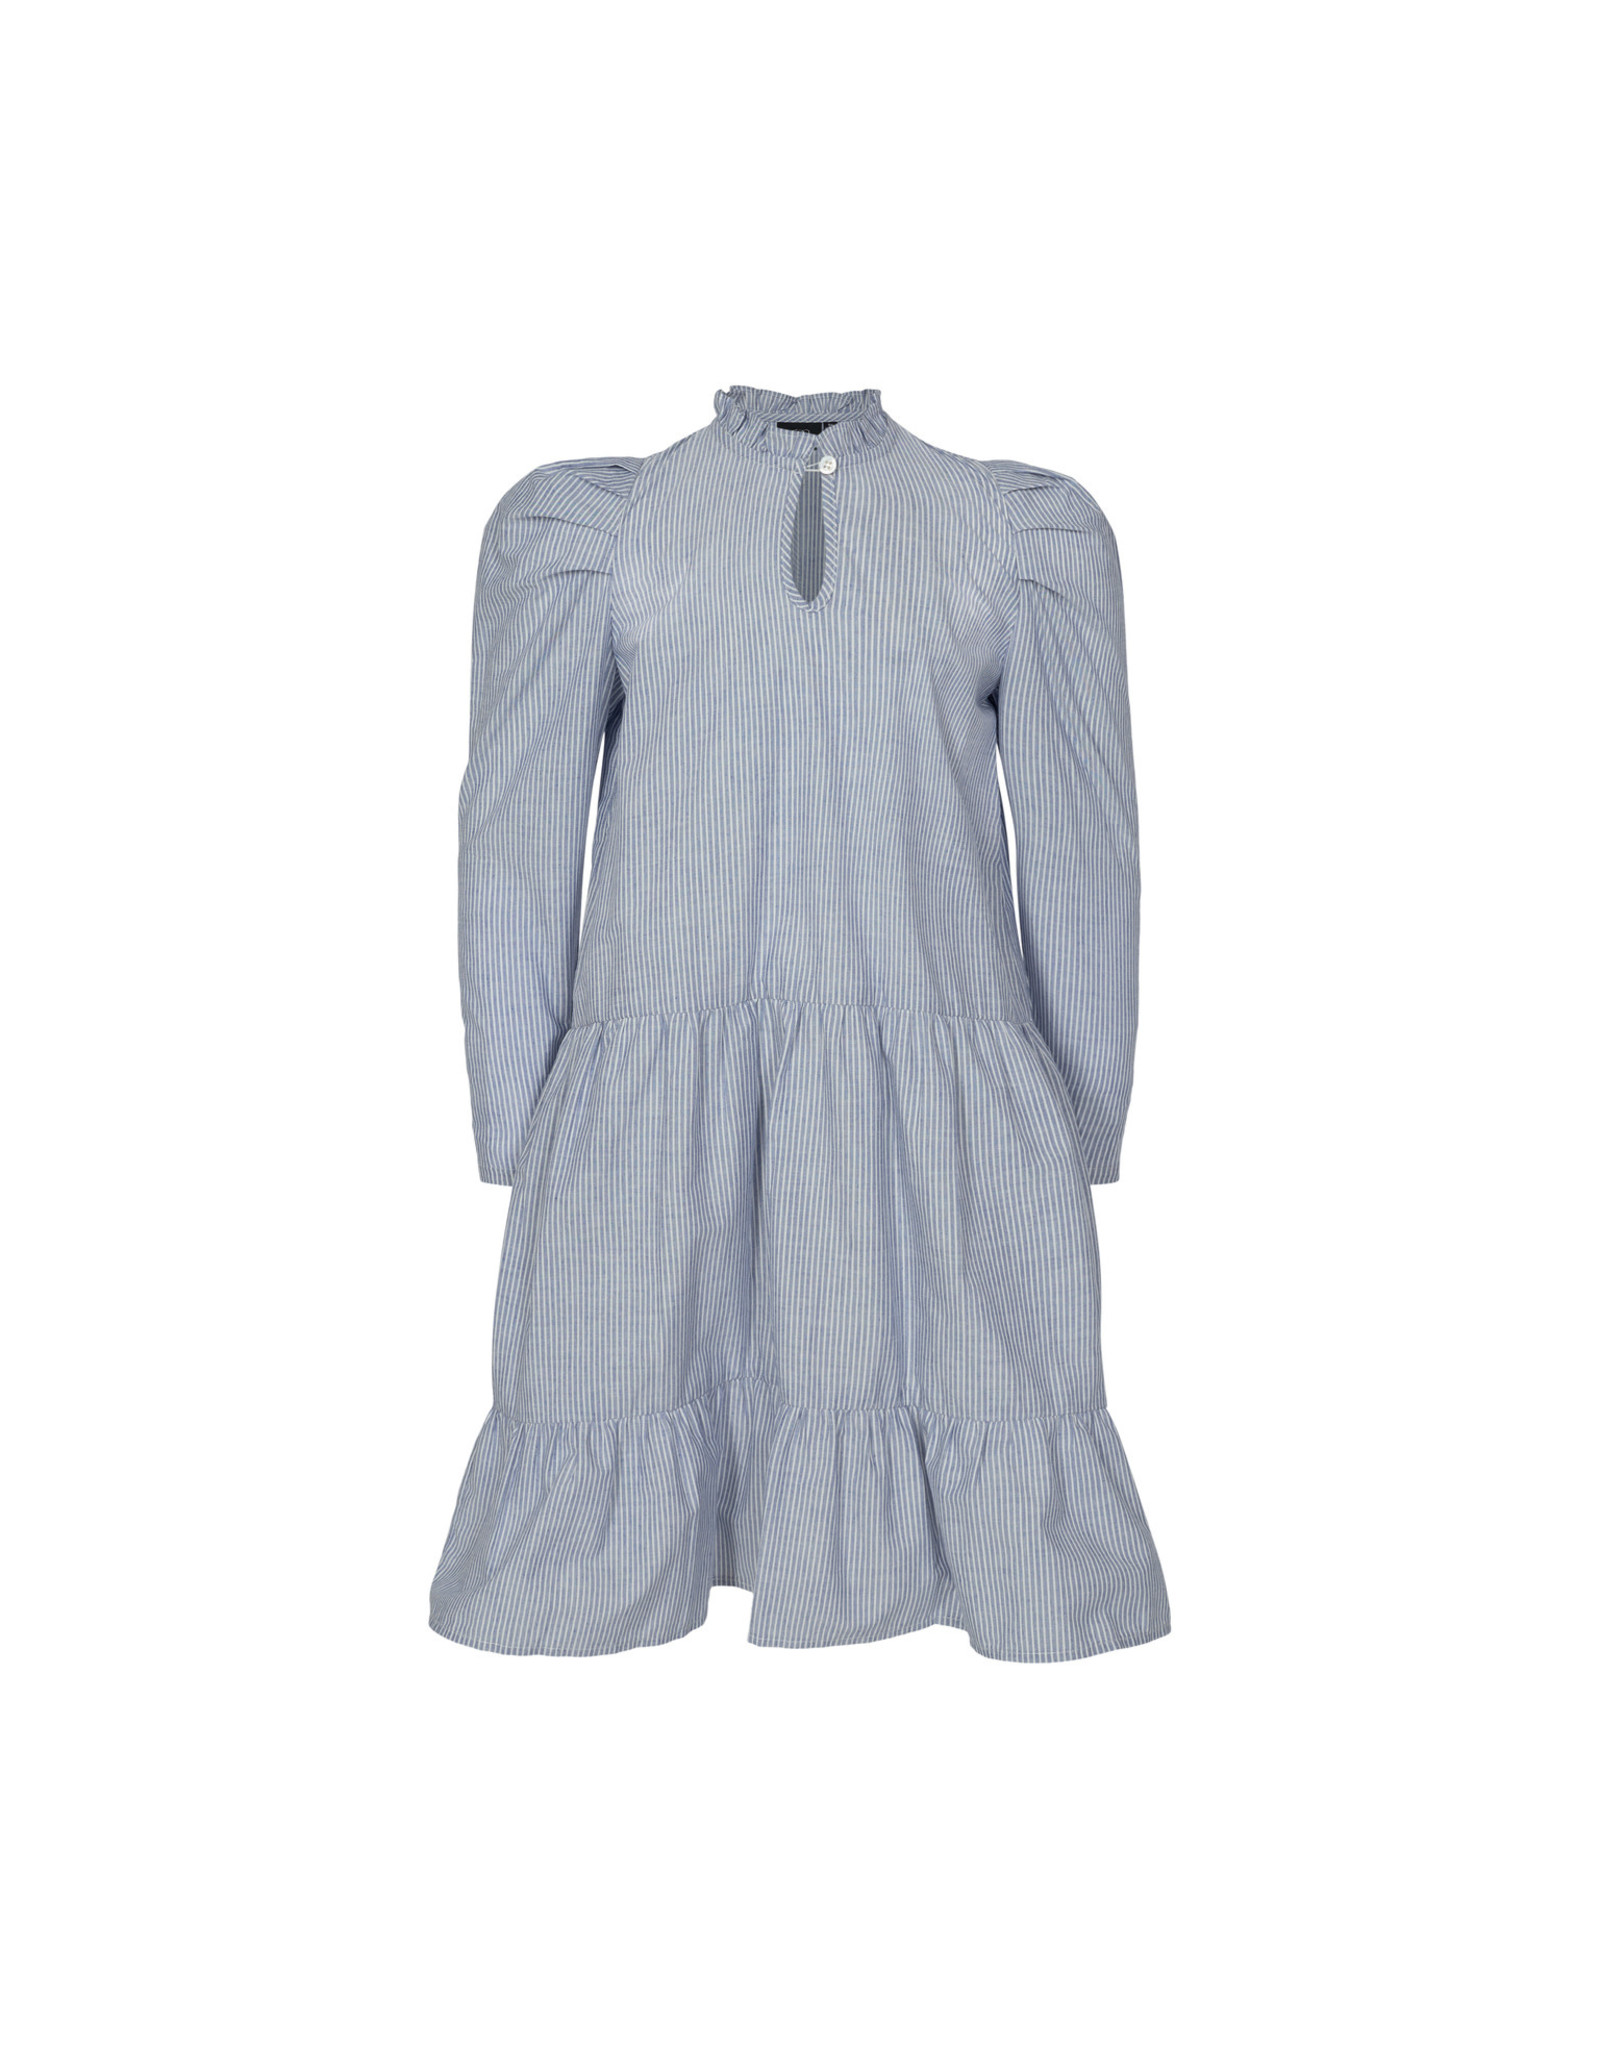 Petit by Sofie Schnoor dress blue stripes